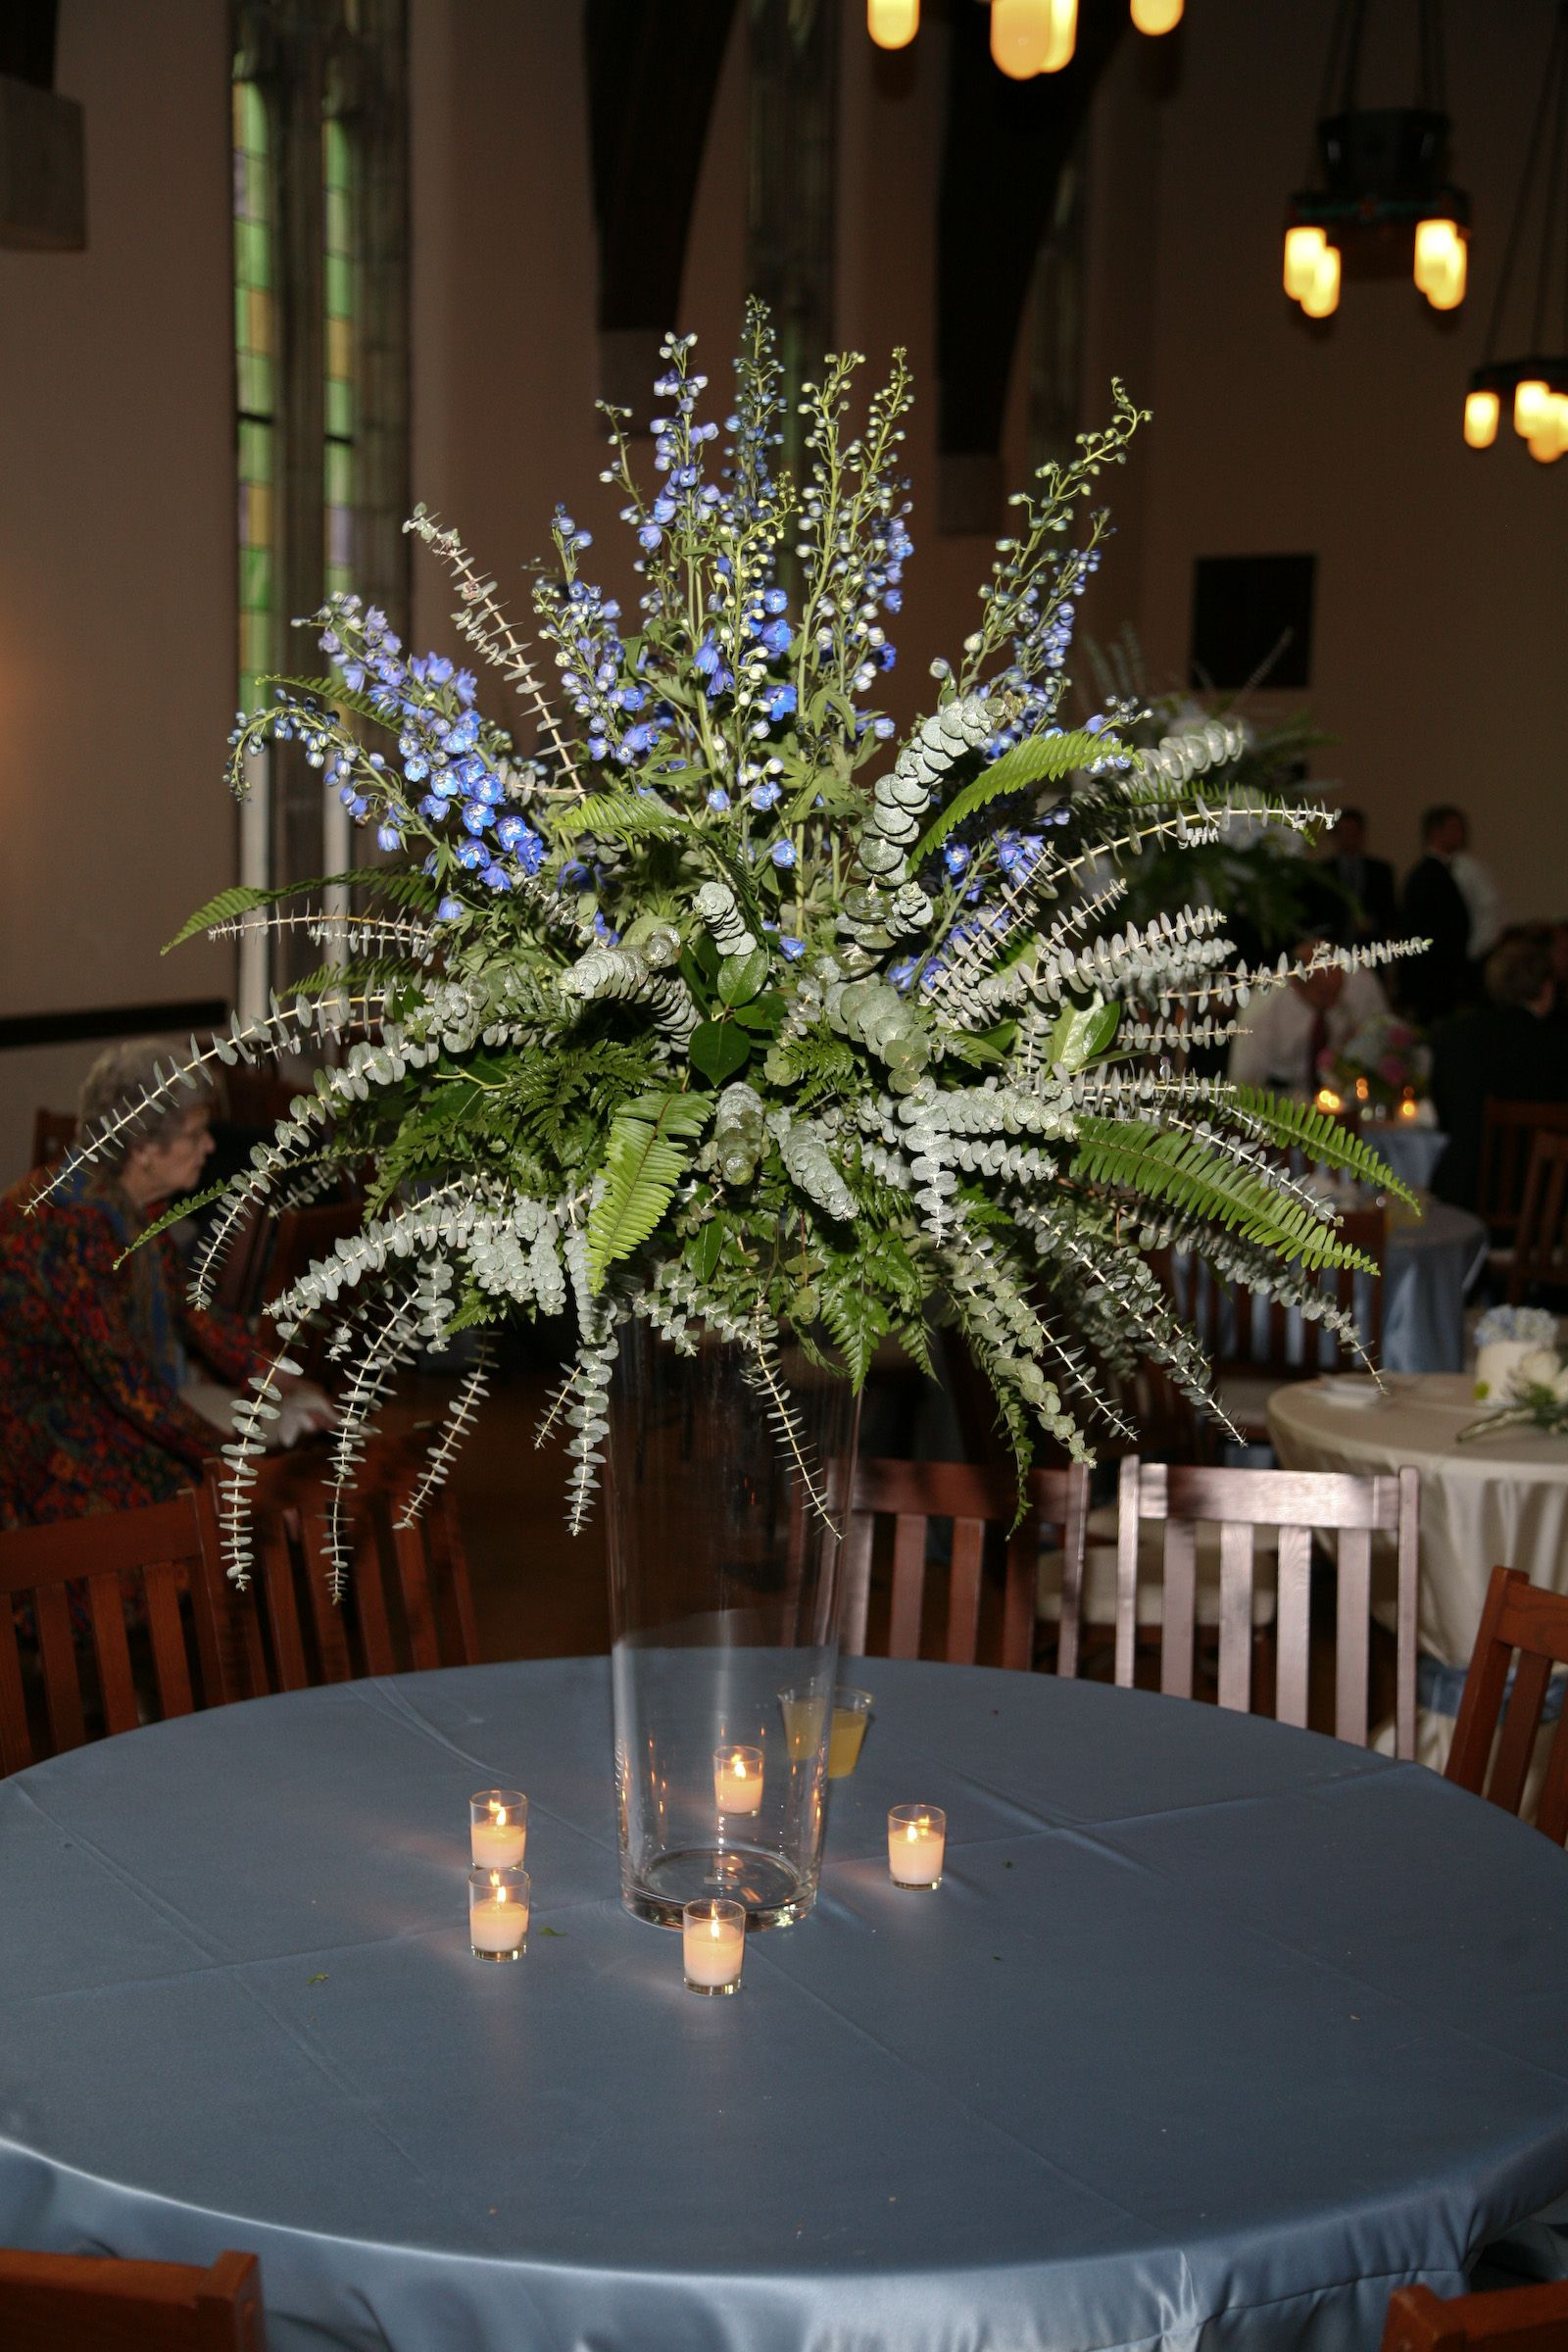 Tall Centerpiece With Lots Of Greenery Including Eucalyptus, Salal Leaves,